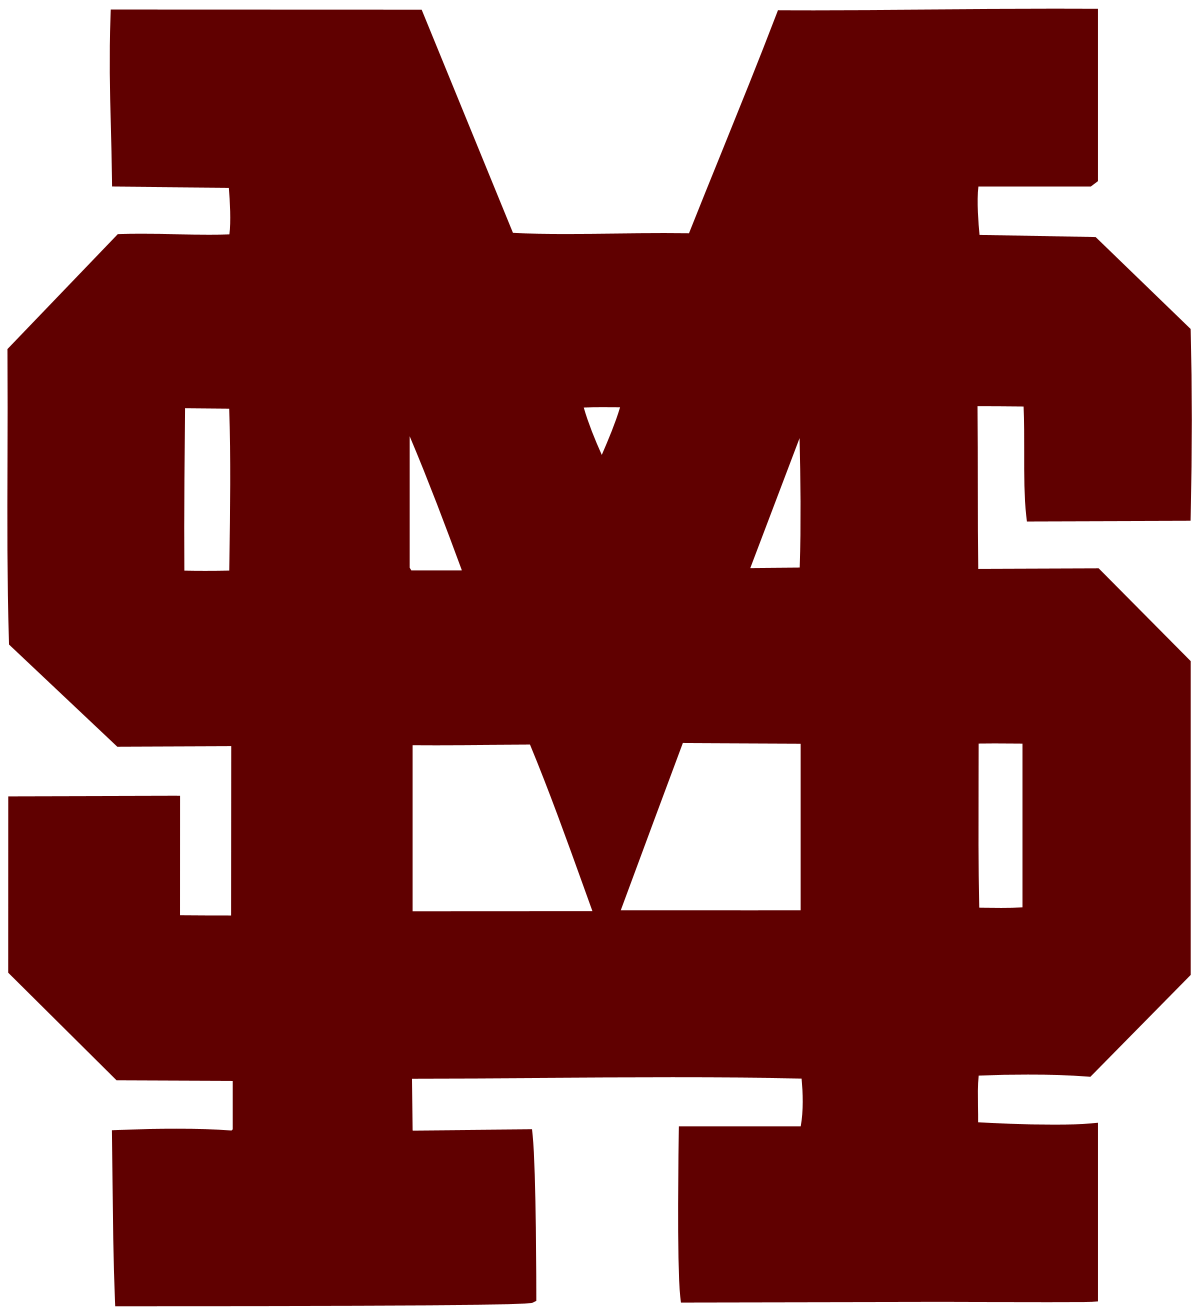 Baseball team swoop clipart png black and white Mississippi State Bulldogs baseball - Wikipedia png black and white